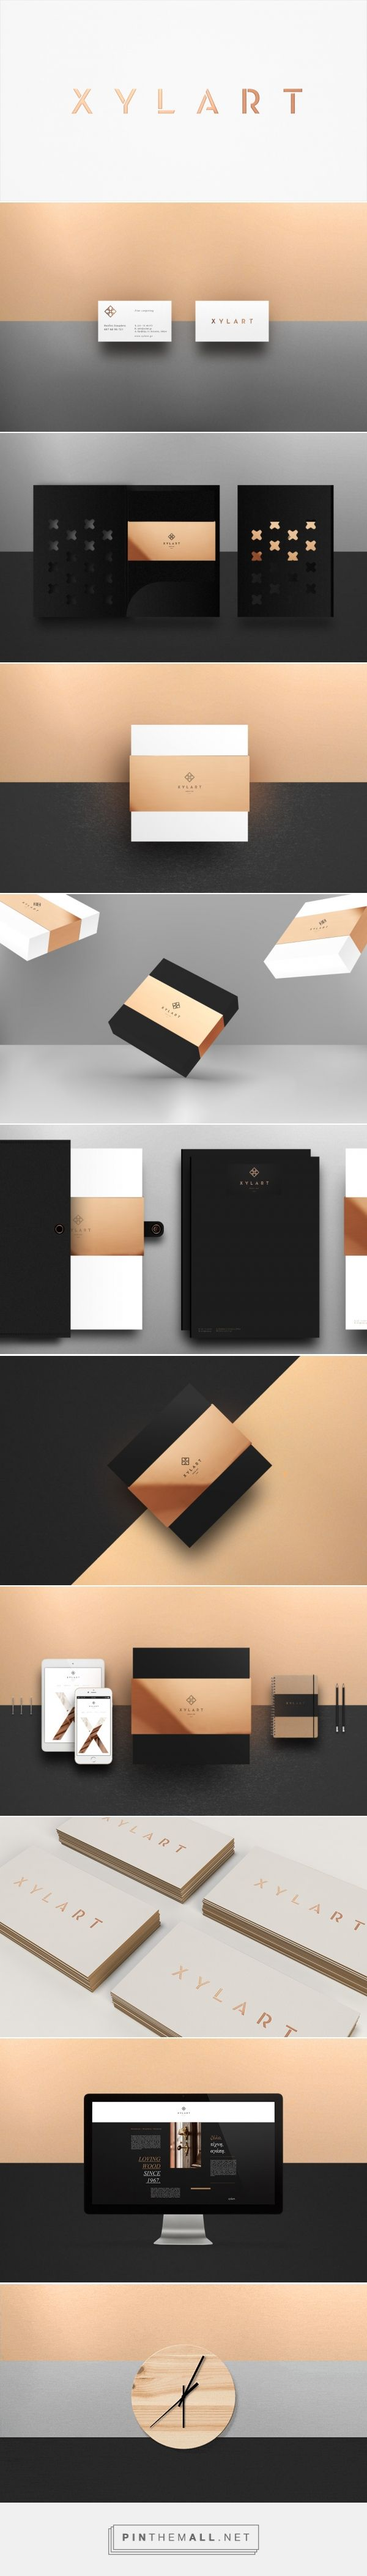 Xylart Wood Workshop Branding by Angelos Botsis | Fivestar Branding Agency – Design and Branding Agency & Curated Inspiration Gallery